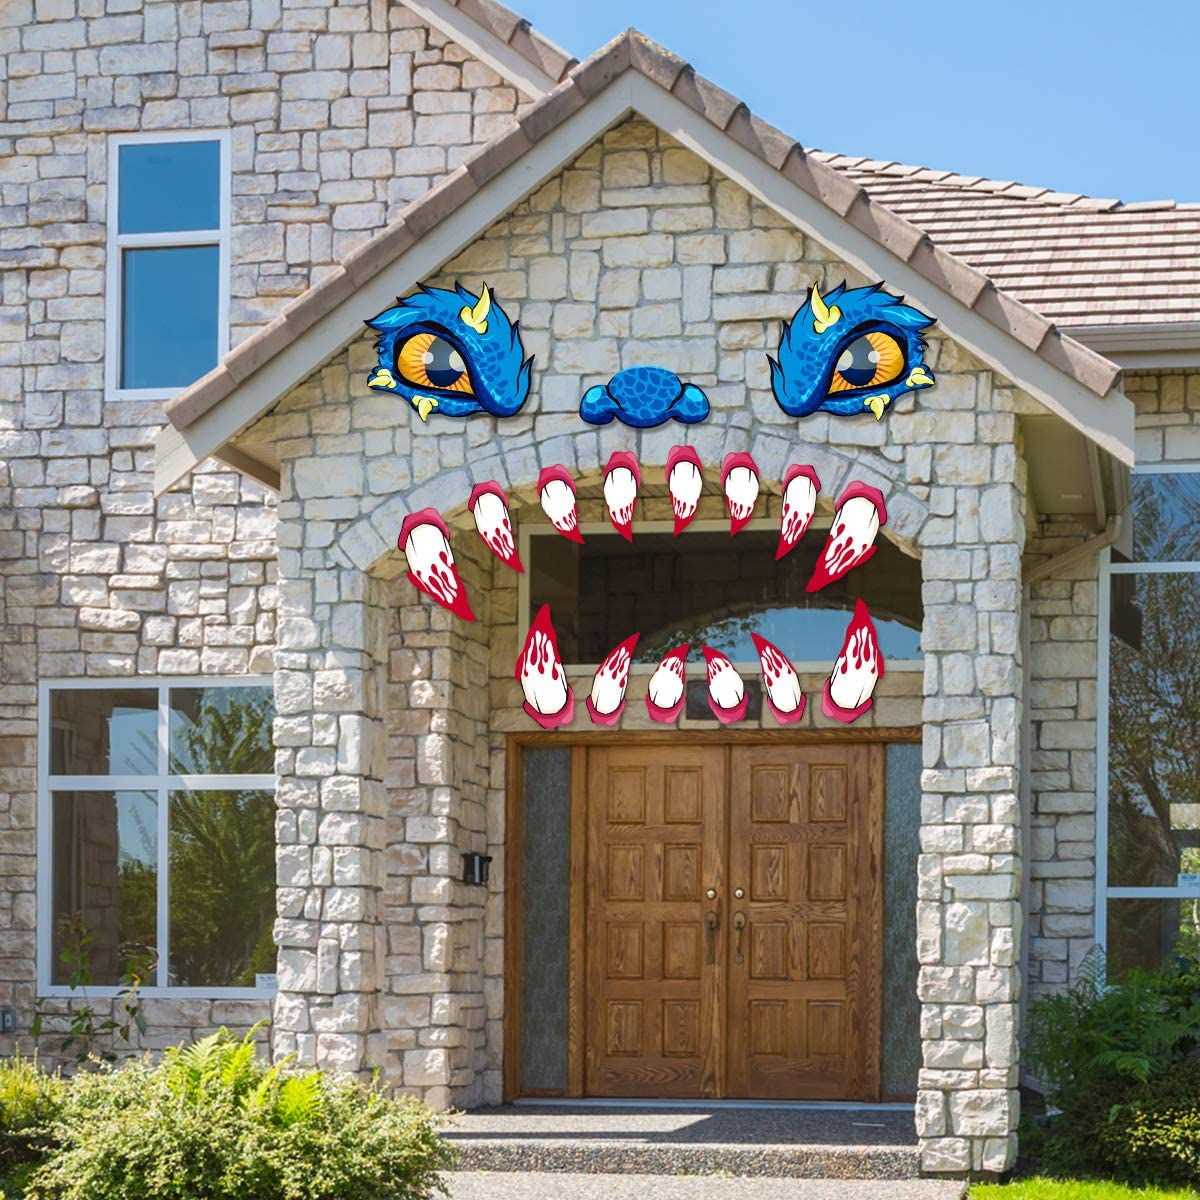 Halloween Decorations Garage Door Archway Monster Face with Eyes, Nostrils & Teeth Included Double Side Adhesive Tapes